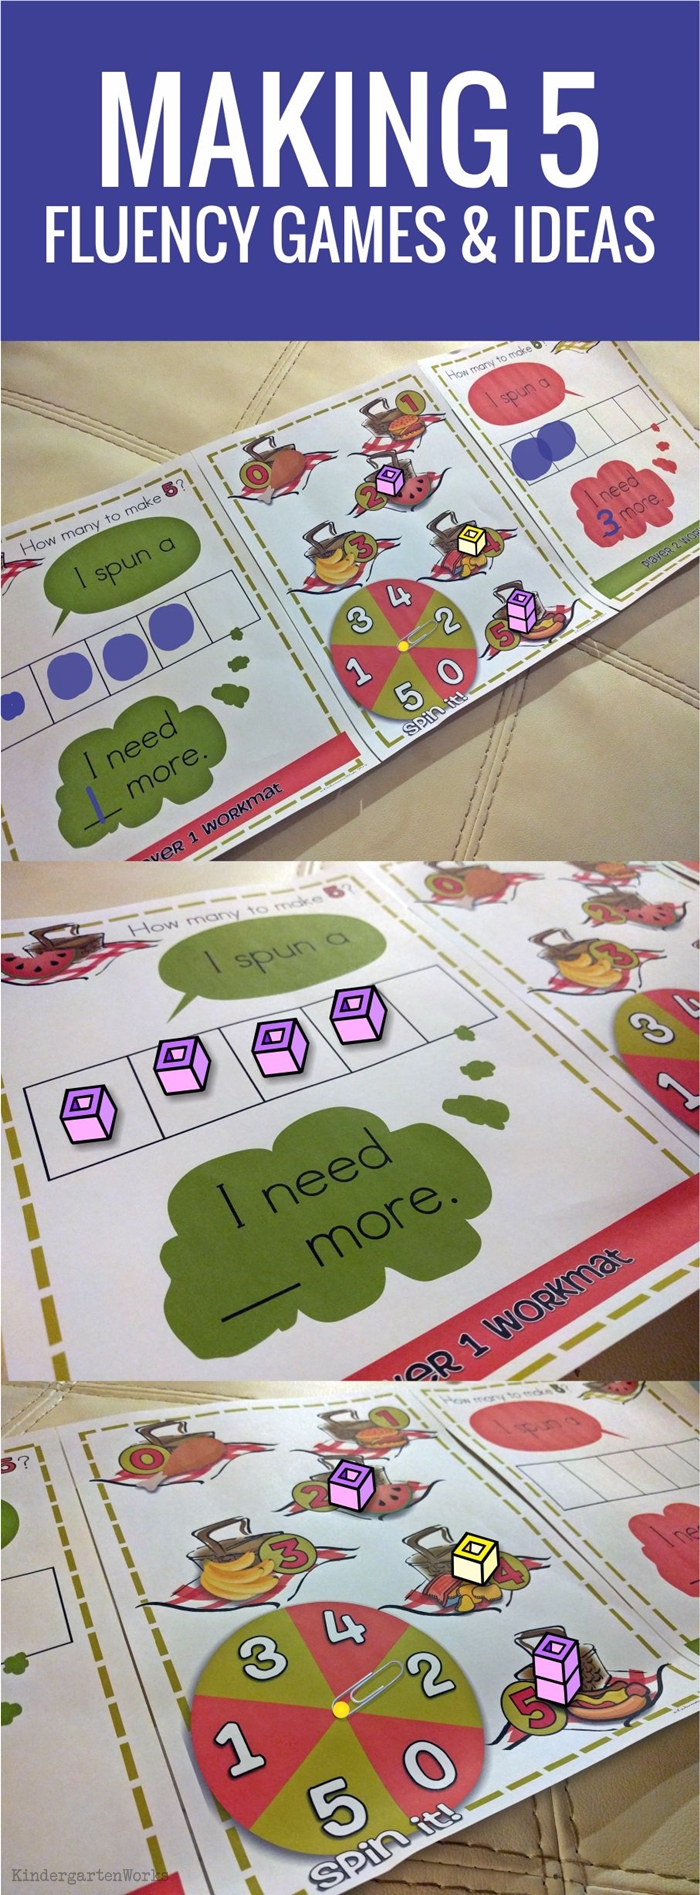 Making 5 fluency ideas and games for Kindergarten - love it!